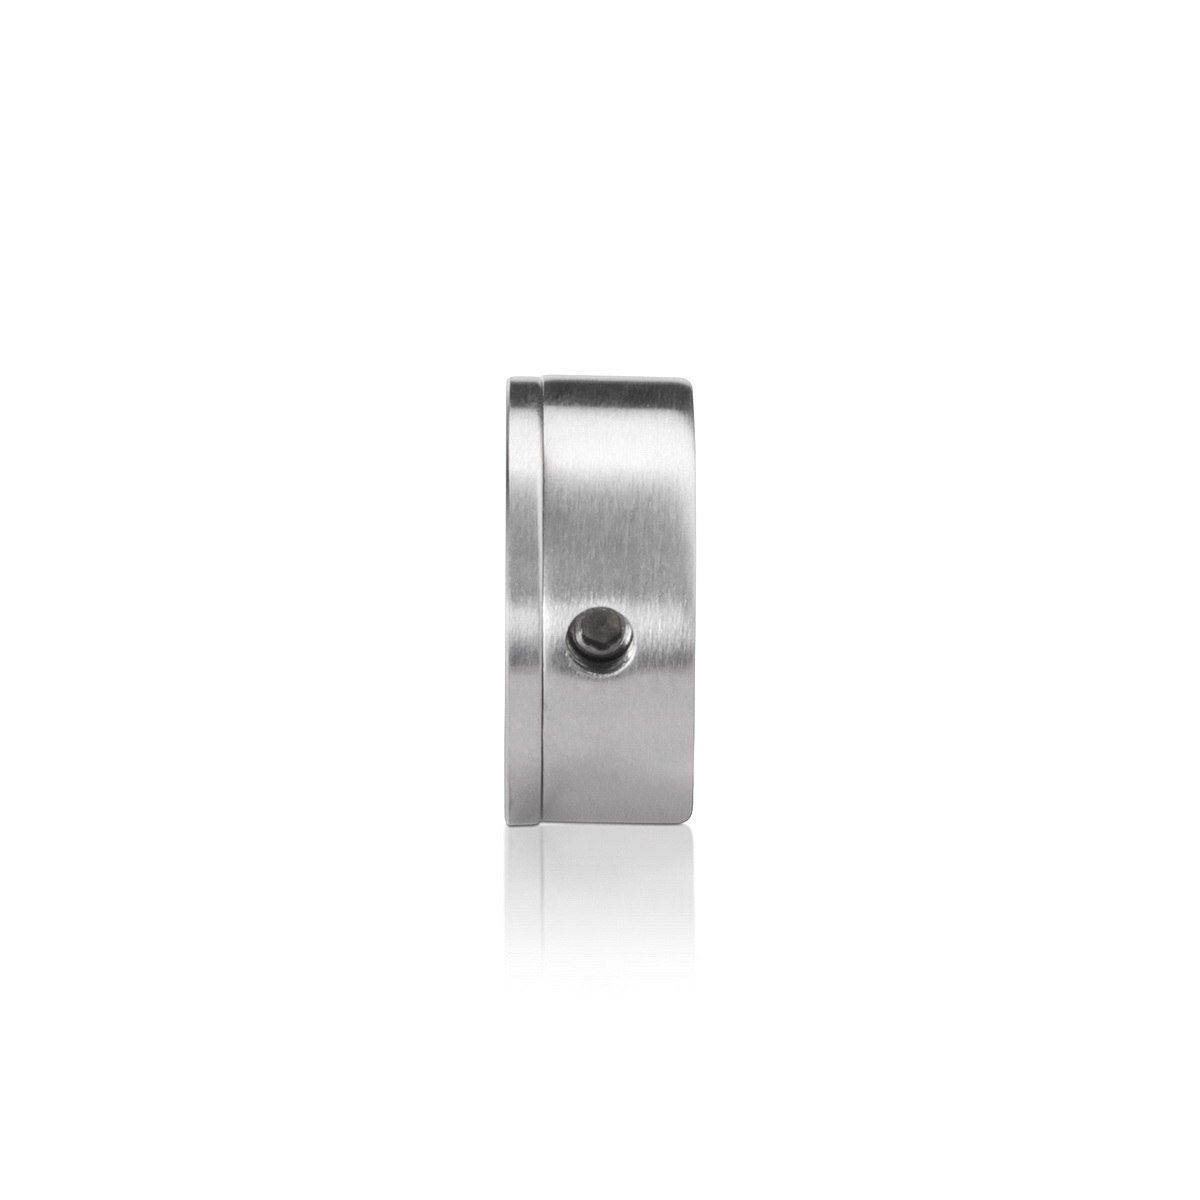 Stainless Steel Glass Standoff, Diameter: 1'', Standoff: 5/16'', Satin Brushed Finish (Indoor Use Only)